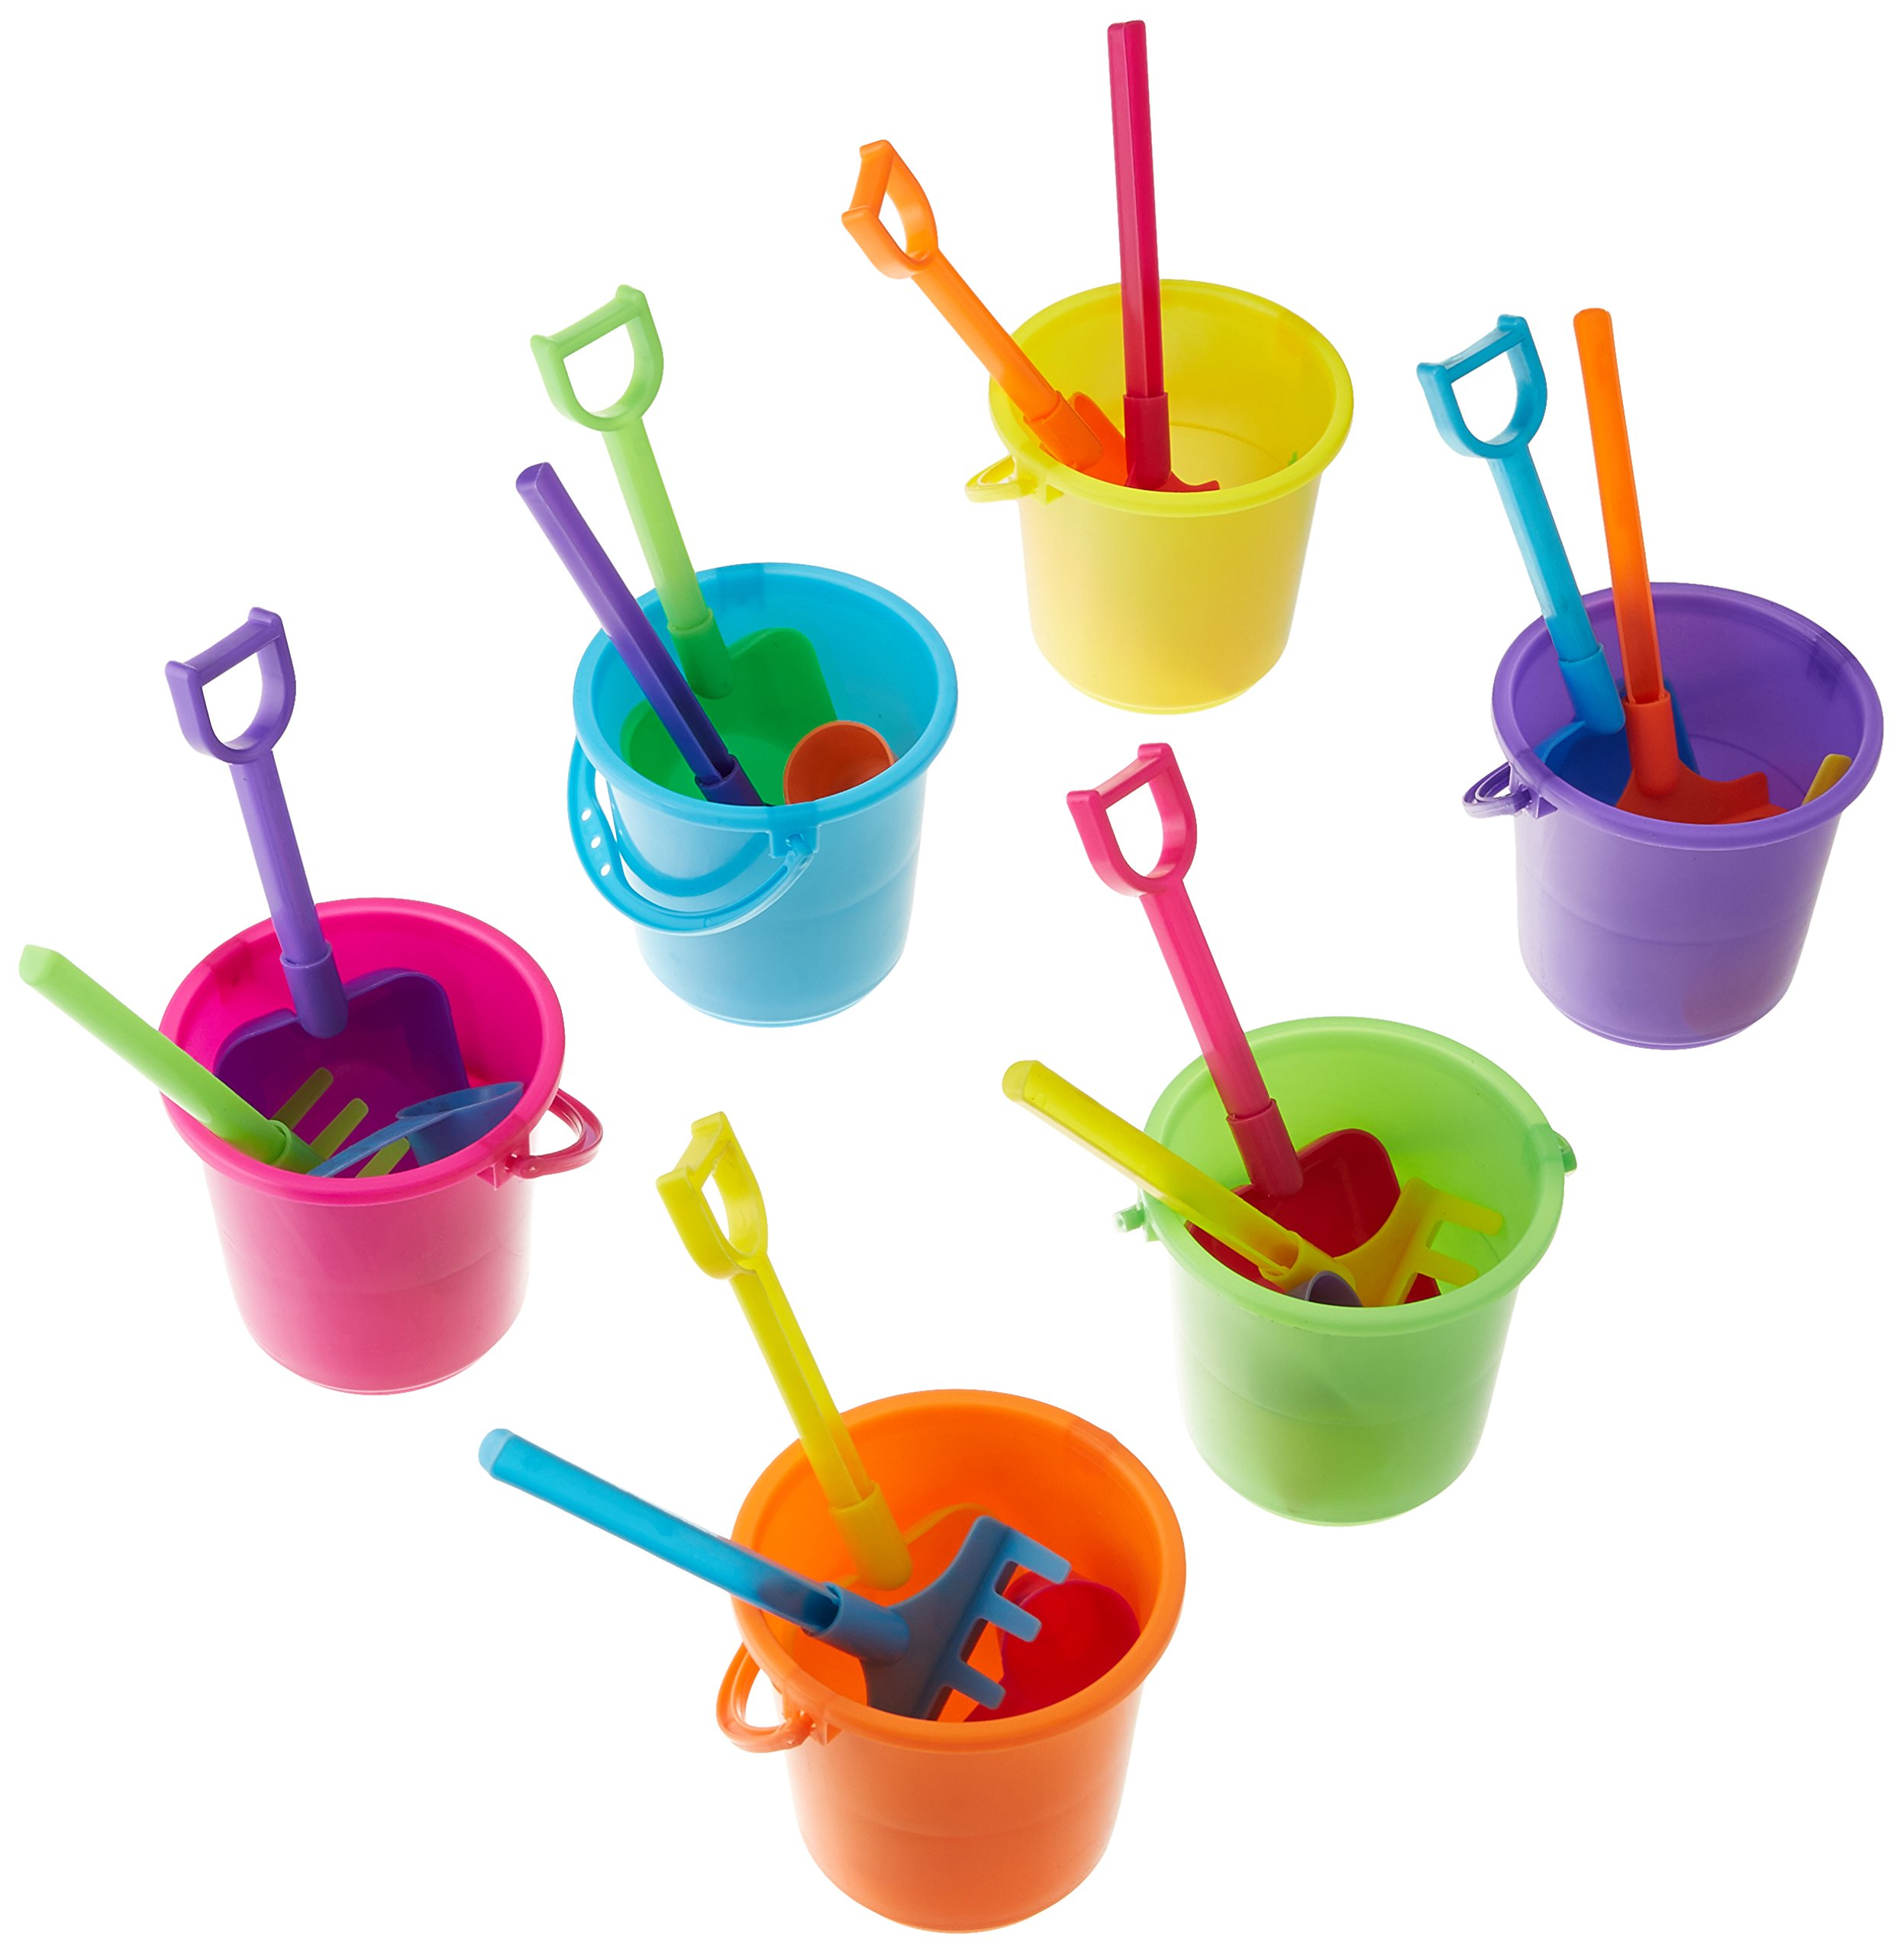 Fun Express Colorful Mini Beach Playsets- 12 Buckets, Shovels, Rakes, and Scoops